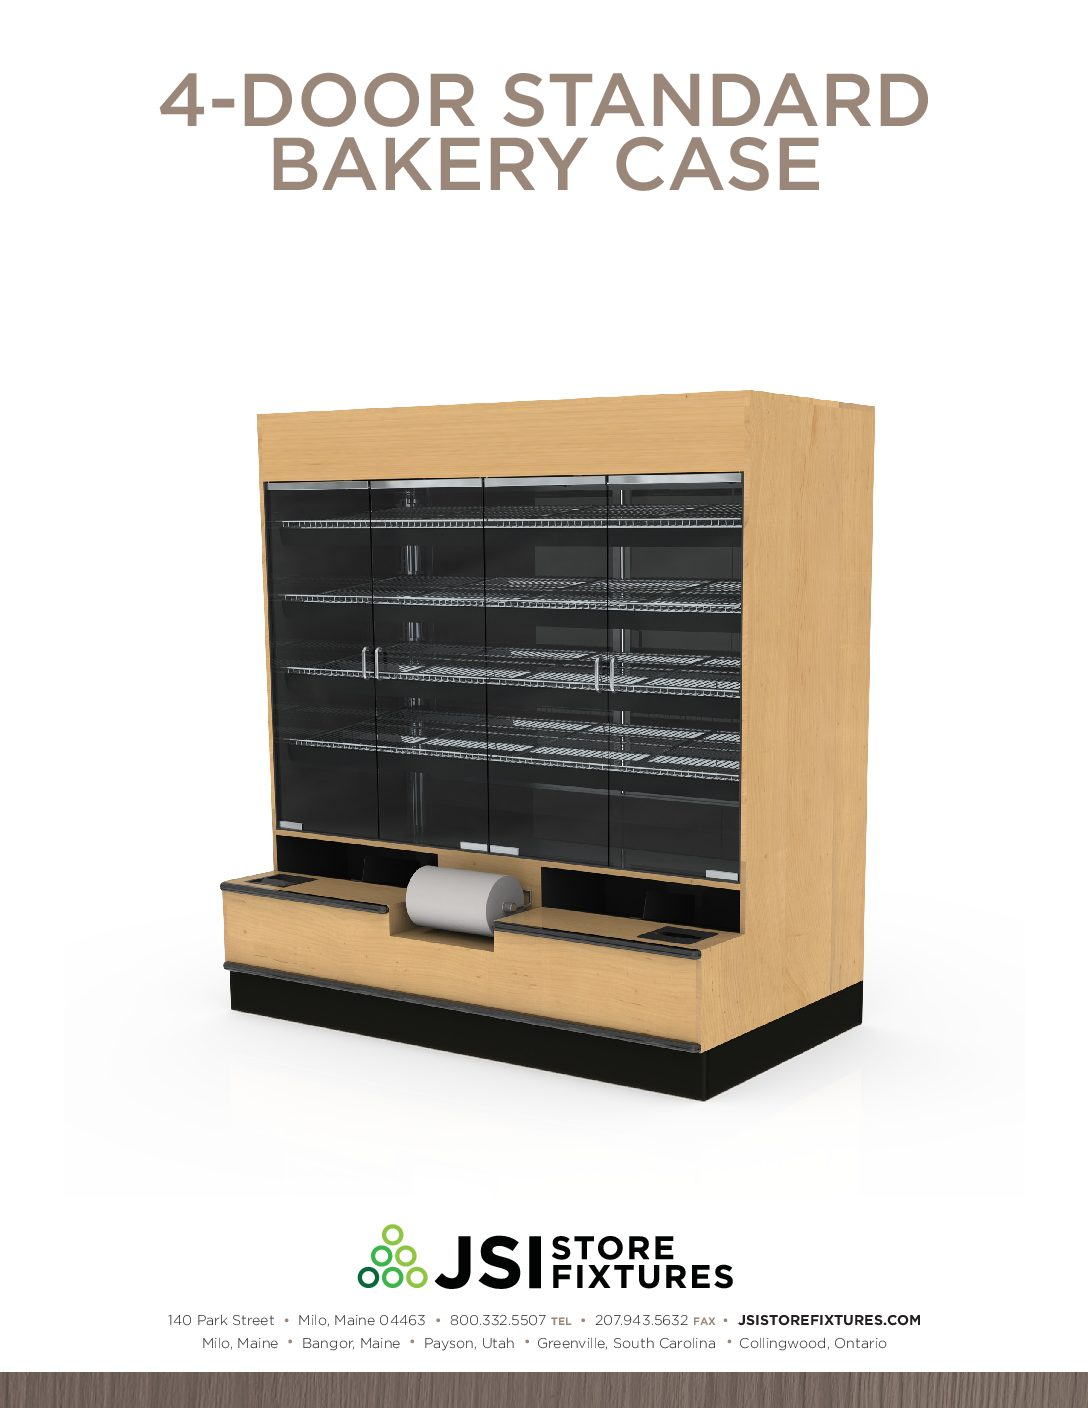 4-Door Standard Bakery Case Spec Sheet